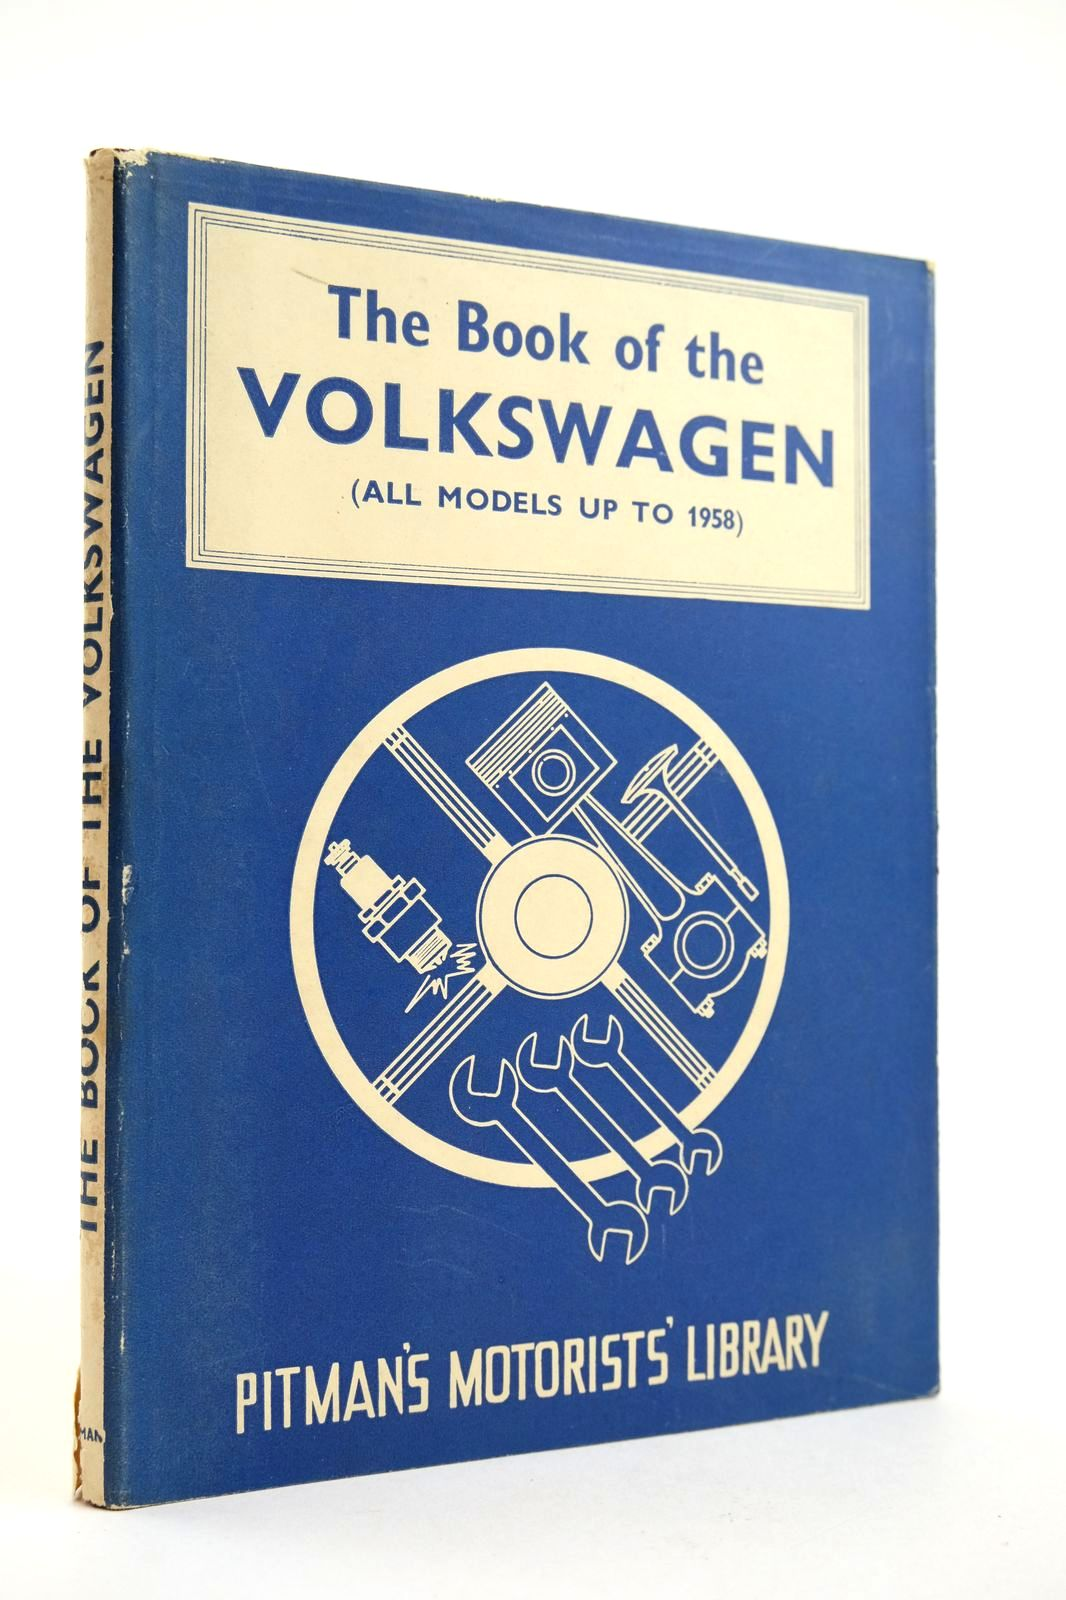 Photo of THE BOOK OF THE VOLKSWAGEN written by Abbey, Staton published by Sir Isaac Pitman & Sons Ltd. (STOCK CODE: 2132560)  for sale by Stella & Rose's Books